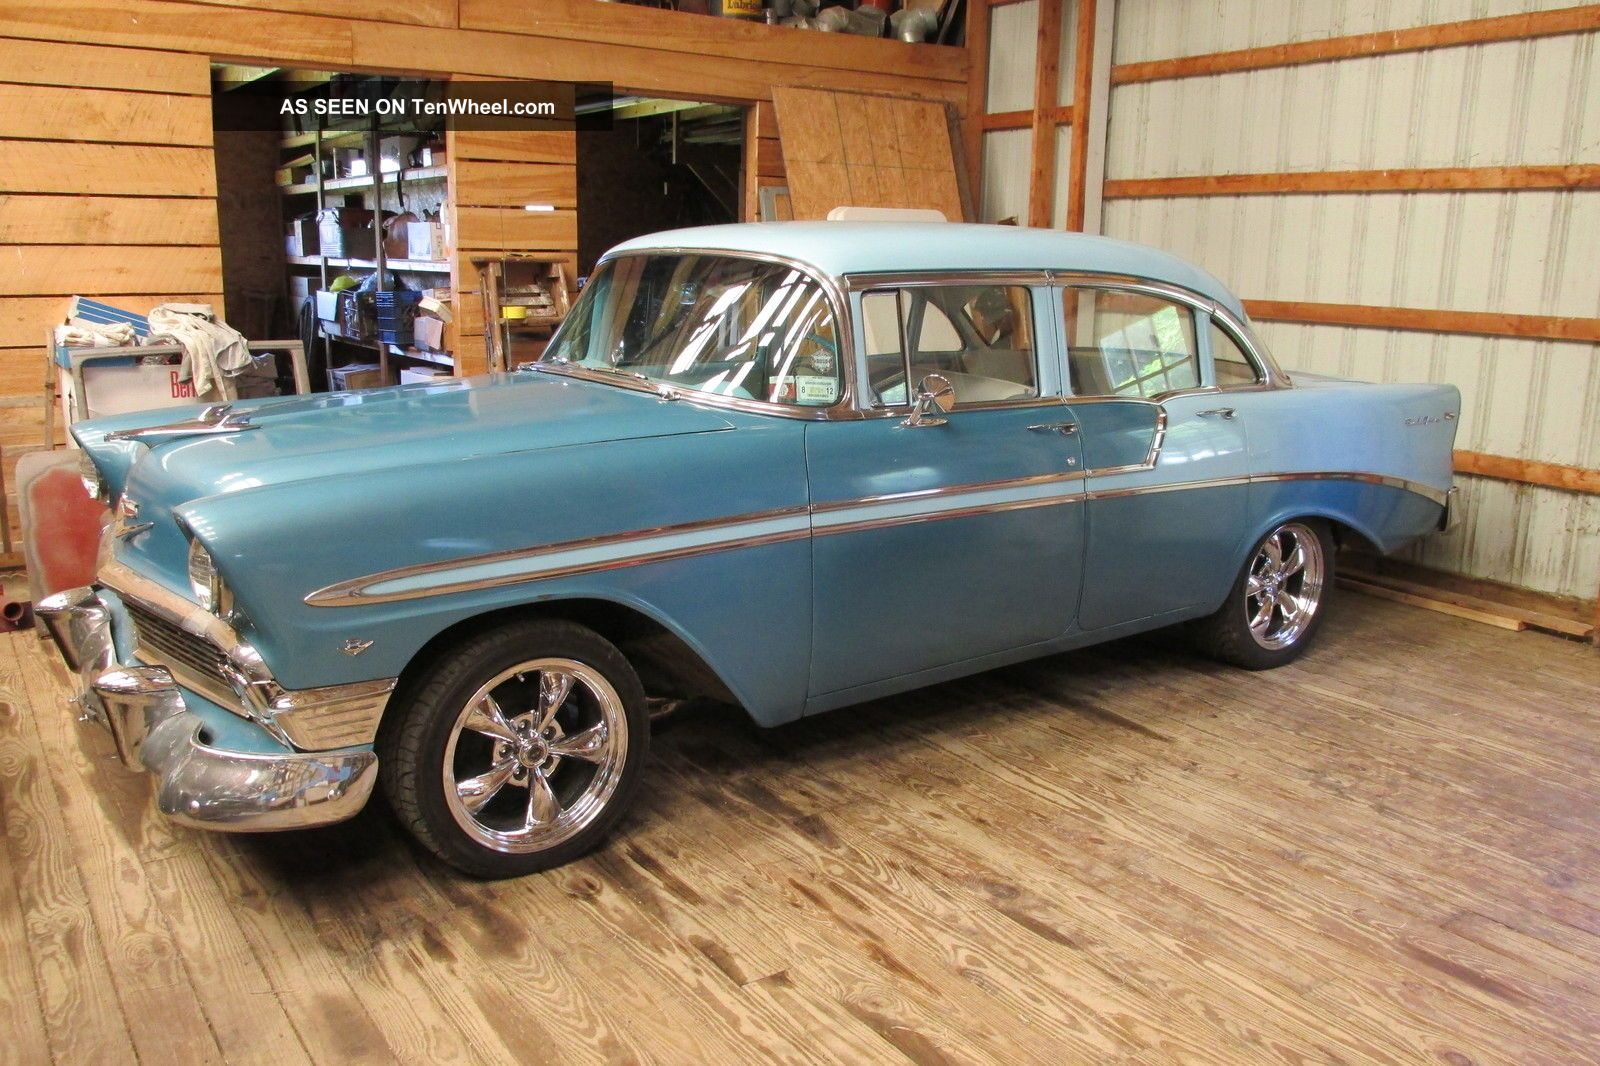 1954 Chevy Wiring Diagram Bel Air 4 Door All Kind Of Diagrams 1952 Ford Mainline Fairlane Odicis 1955 For 1956